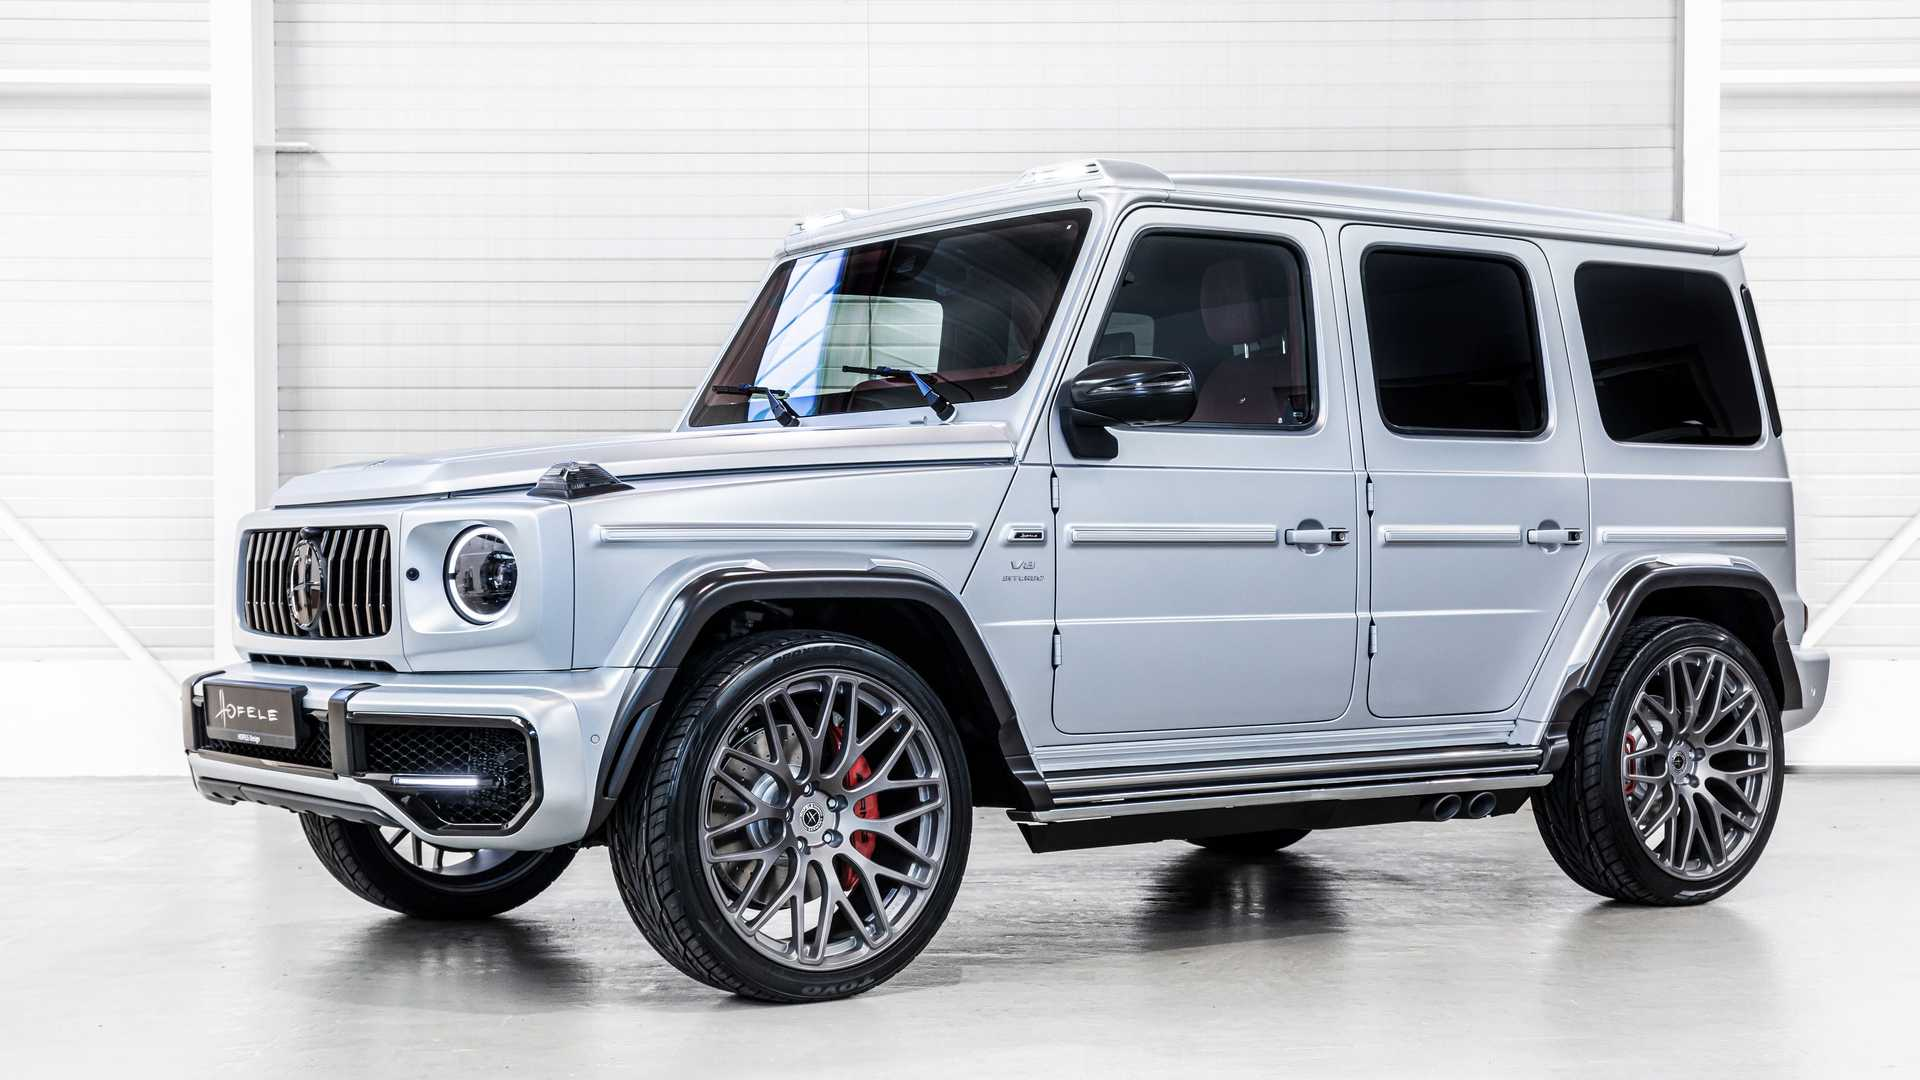 The Mercedes-Benz G-Class, and the AMG G63 in particular, is an aftermarket tuning favorite, and many tuners just don't know when to stop. Frankly speaking, we had our concerns about Hofele, but its latest take on the G-Class is just as fashionable as the rest of them.